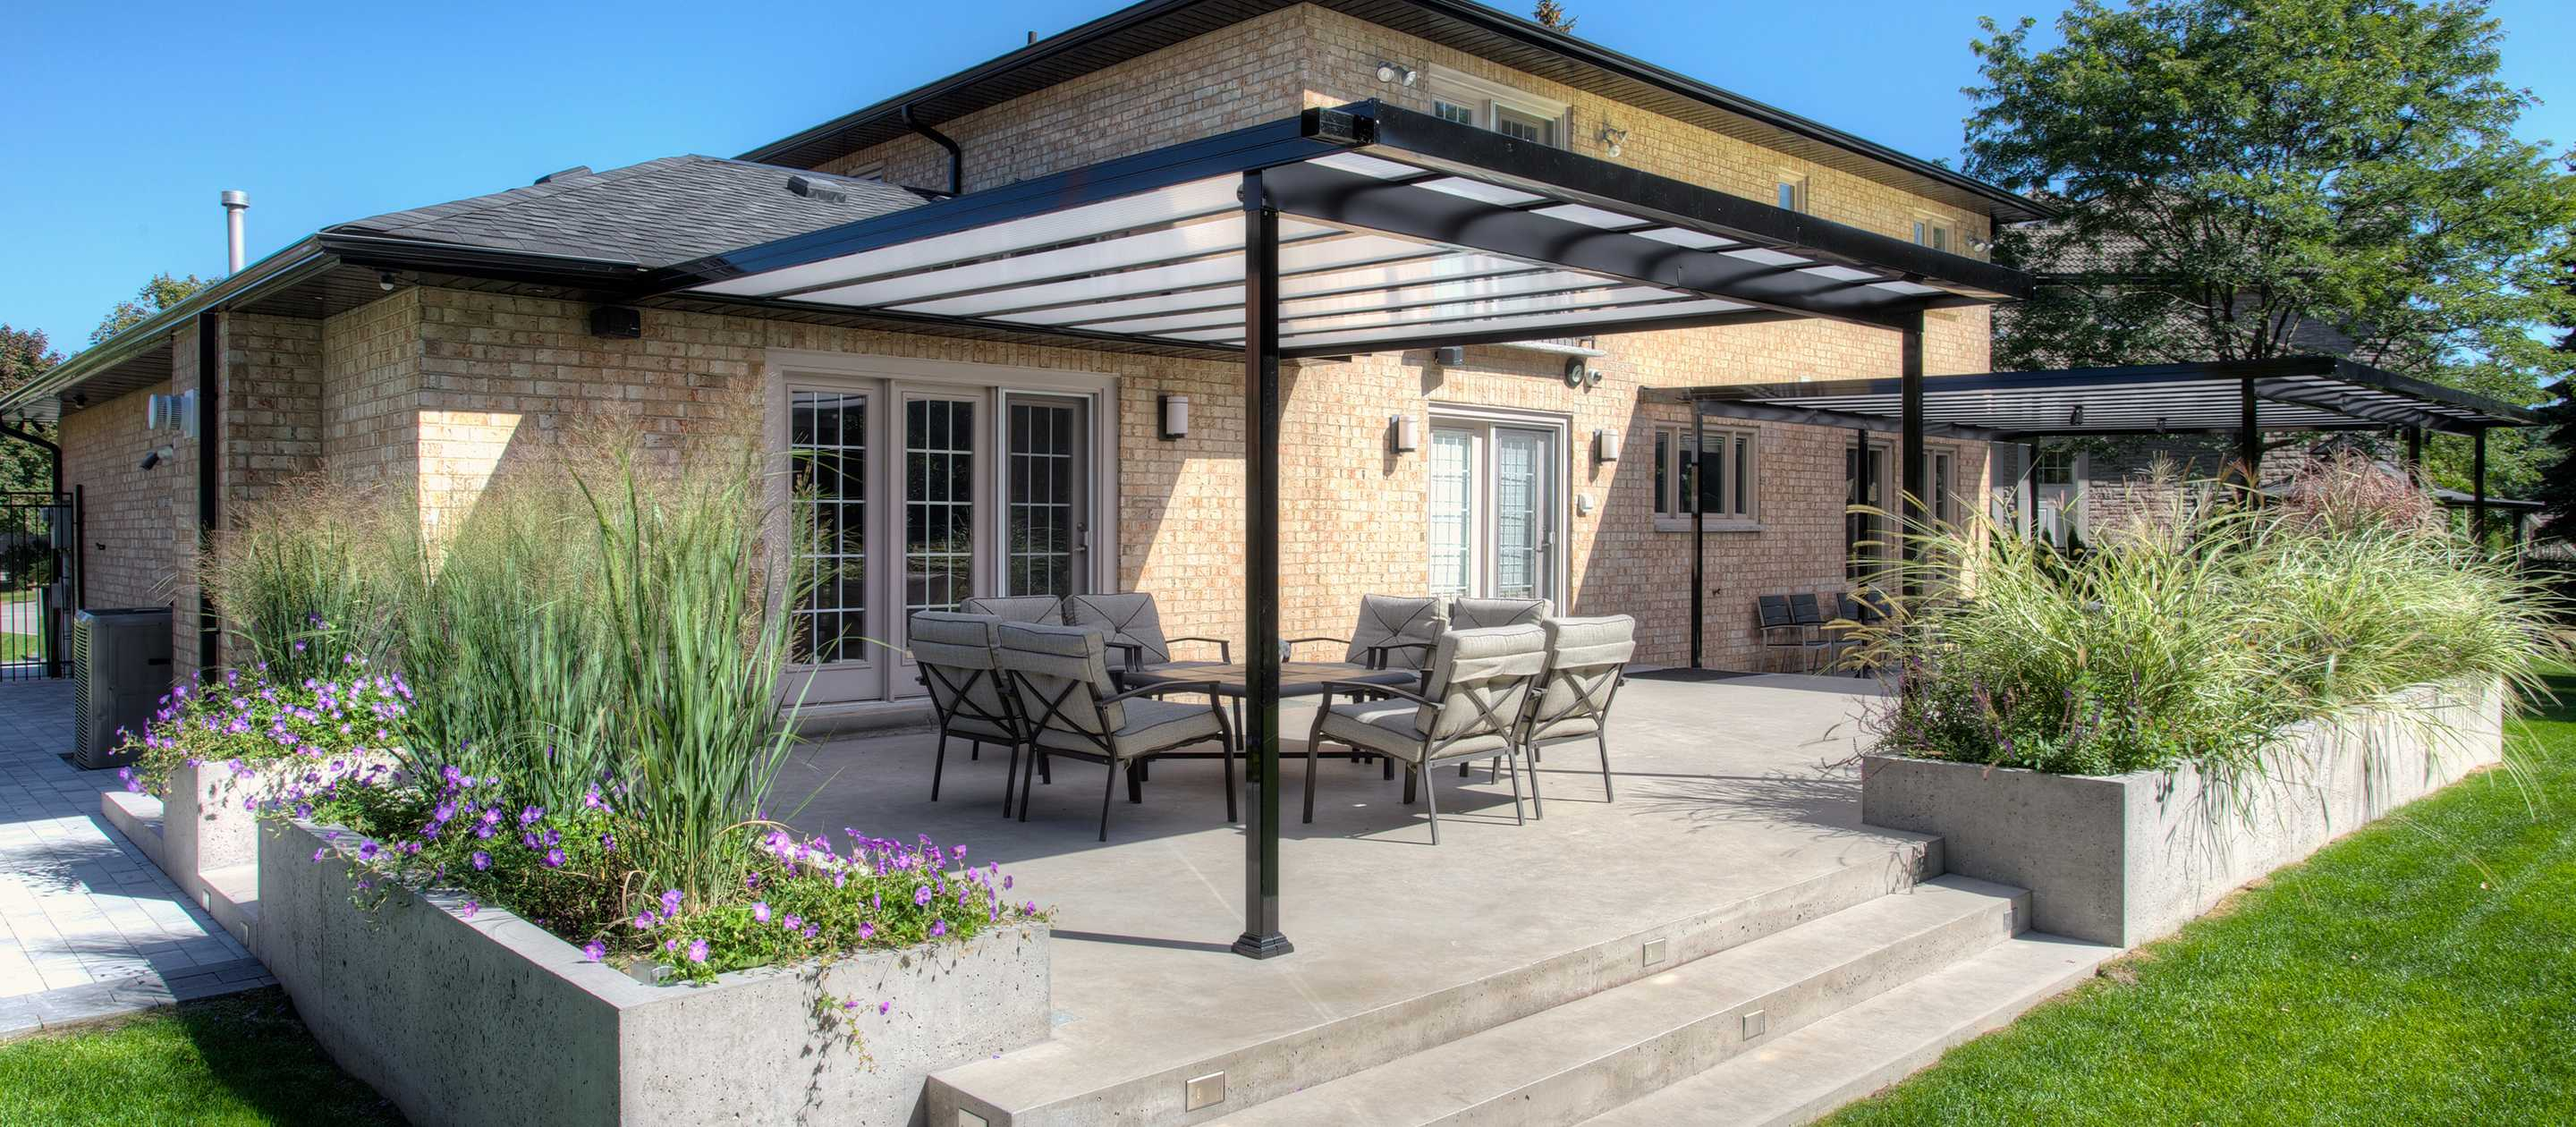 patio covers, deck covers, deck coverings, backyard covered patio, best patio covers, frequently asked questions on patio covers